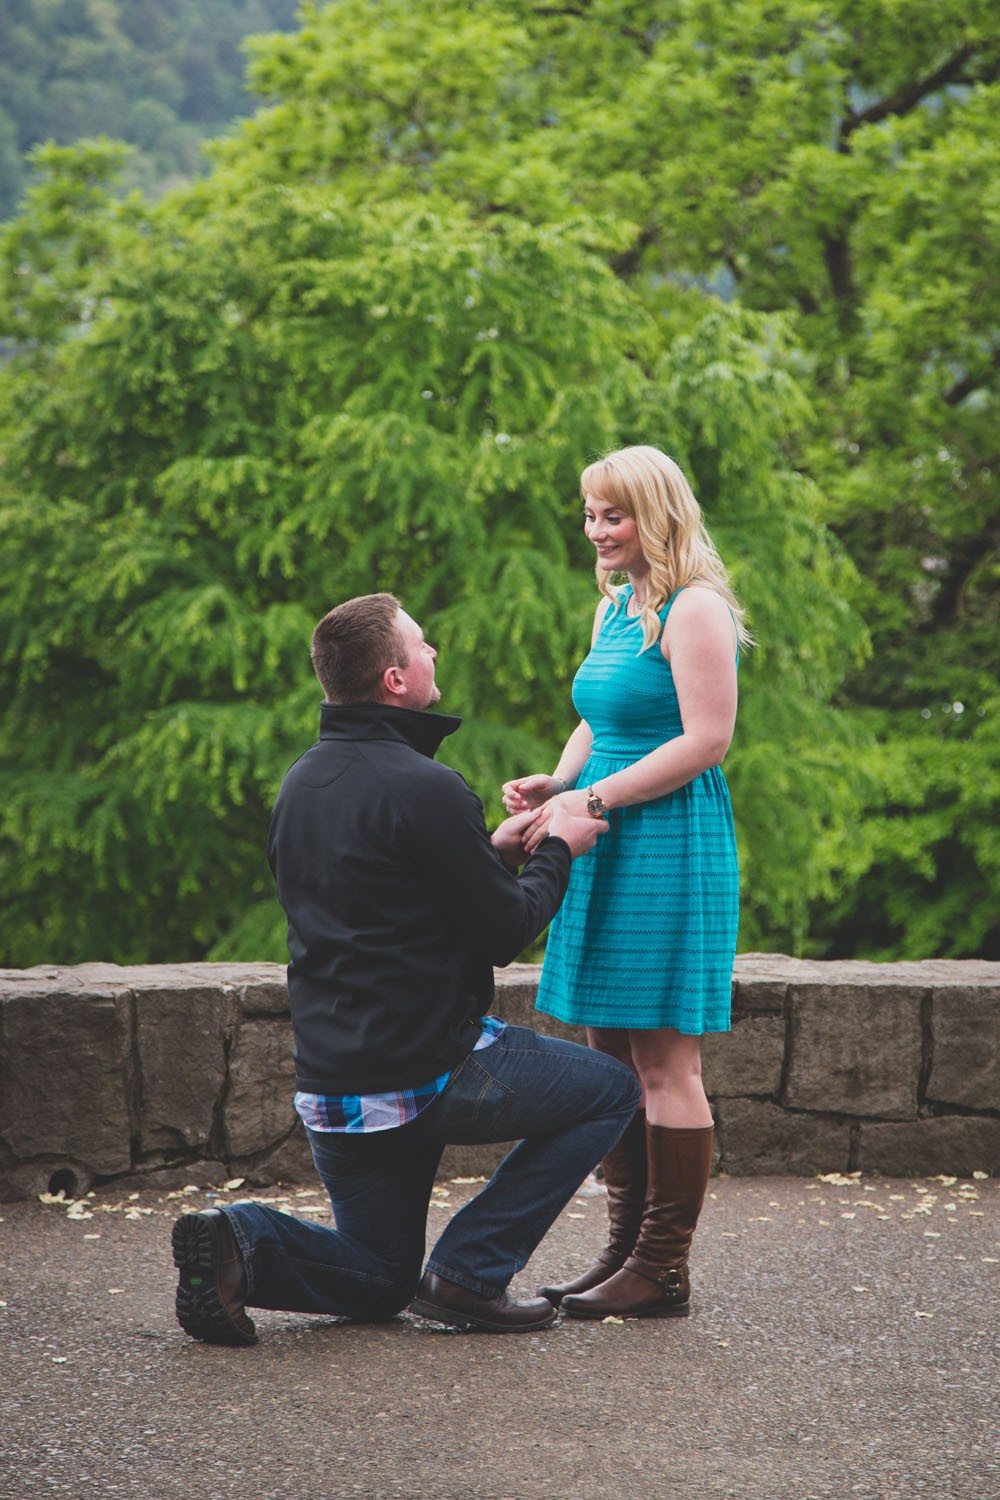 Rachael&Brandon Proposal Cat Dossett I Take Photos-2